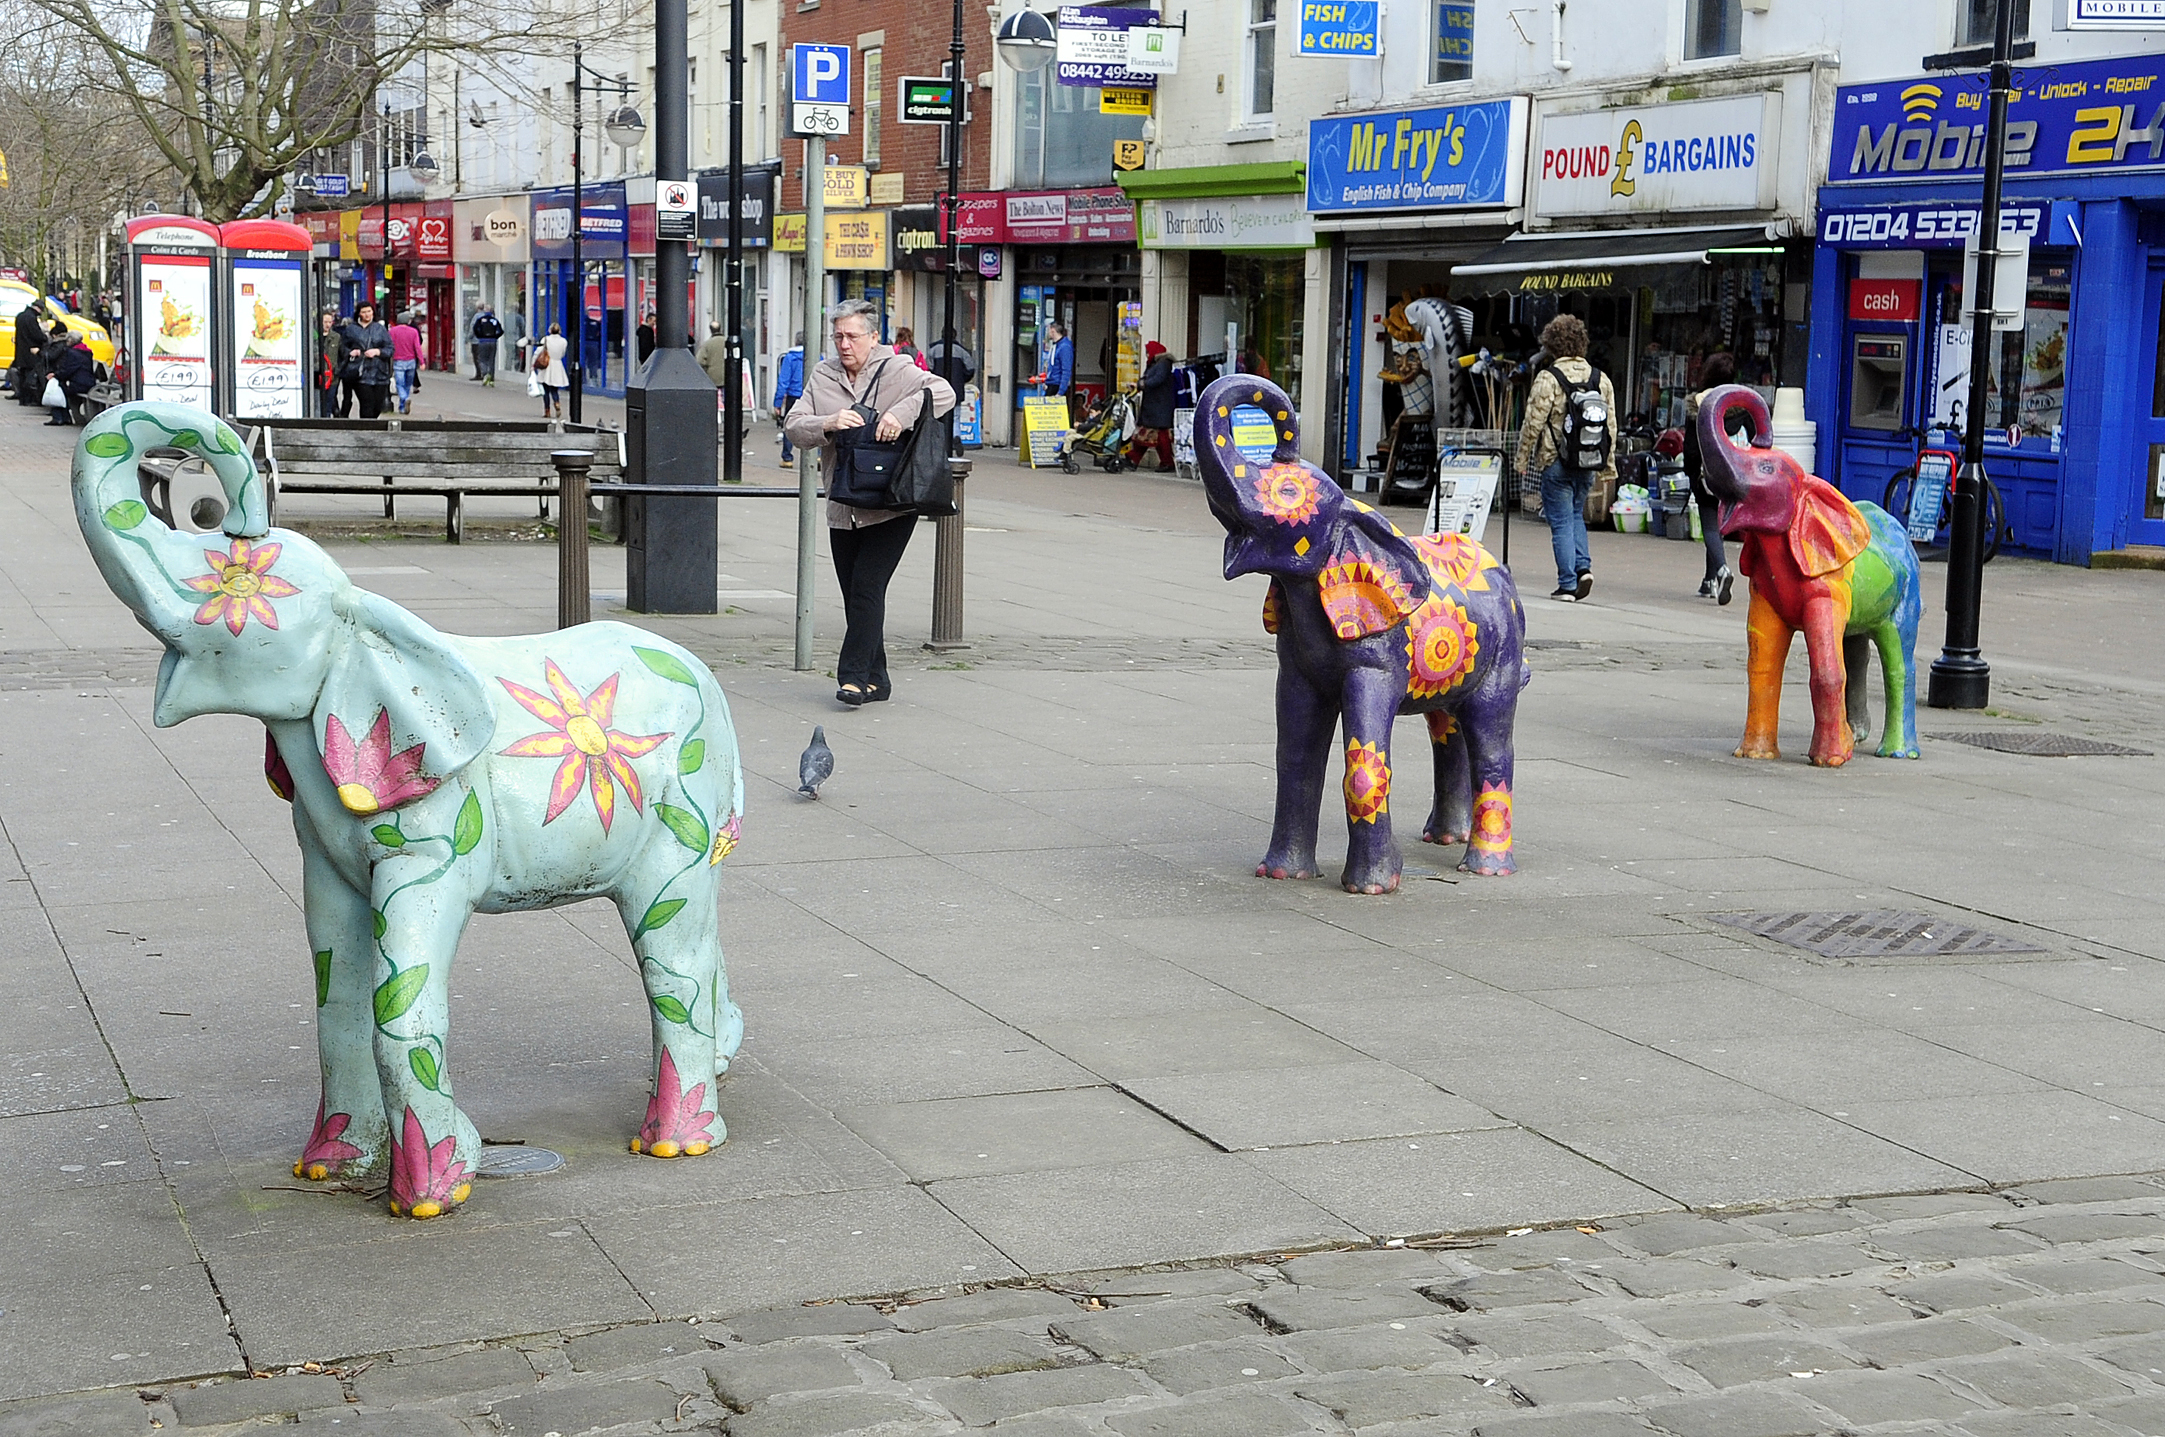 Charity canopy and Newport Street elephants to be moved